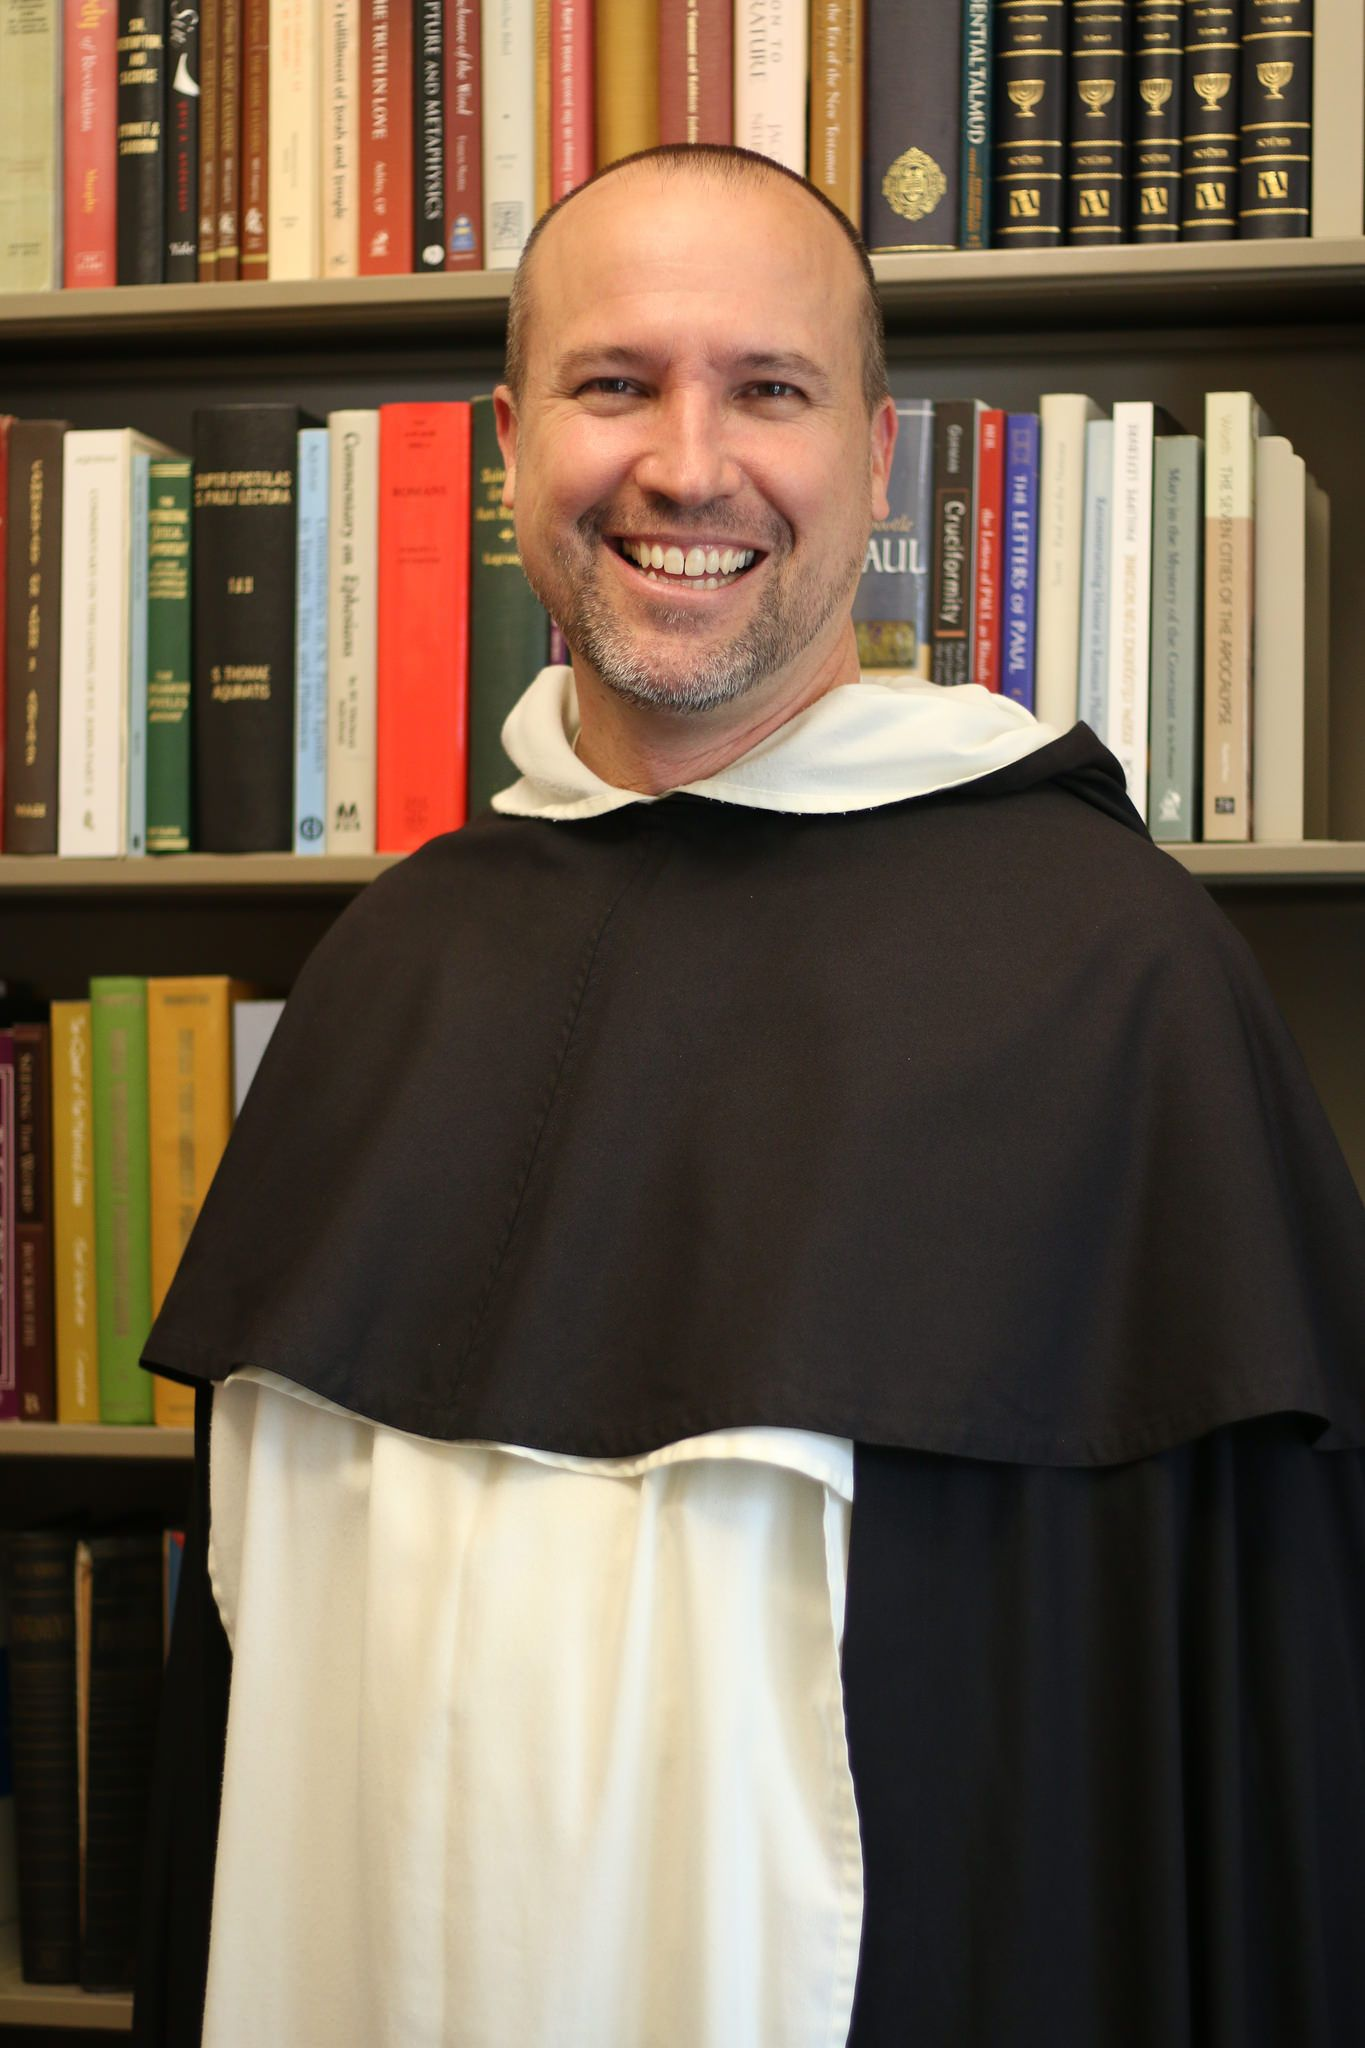 https://flic.kr/p/GGj85B | Fr. Benedict Croell OP | Fr. Benedict Croell, O.P., a Dominican friar, hails from Colorado. He studied at Colorado State University, Providence College (RI), the Dominican House of Studies in Washington, D.C. and the Pontifical University of St. Thomas Aquinas (Angelicum) in Rome. He has served in parish, university and itinerant preaching ministries. He also served 5 years in the Order's East African missions where he was novice master for friars in their initial…